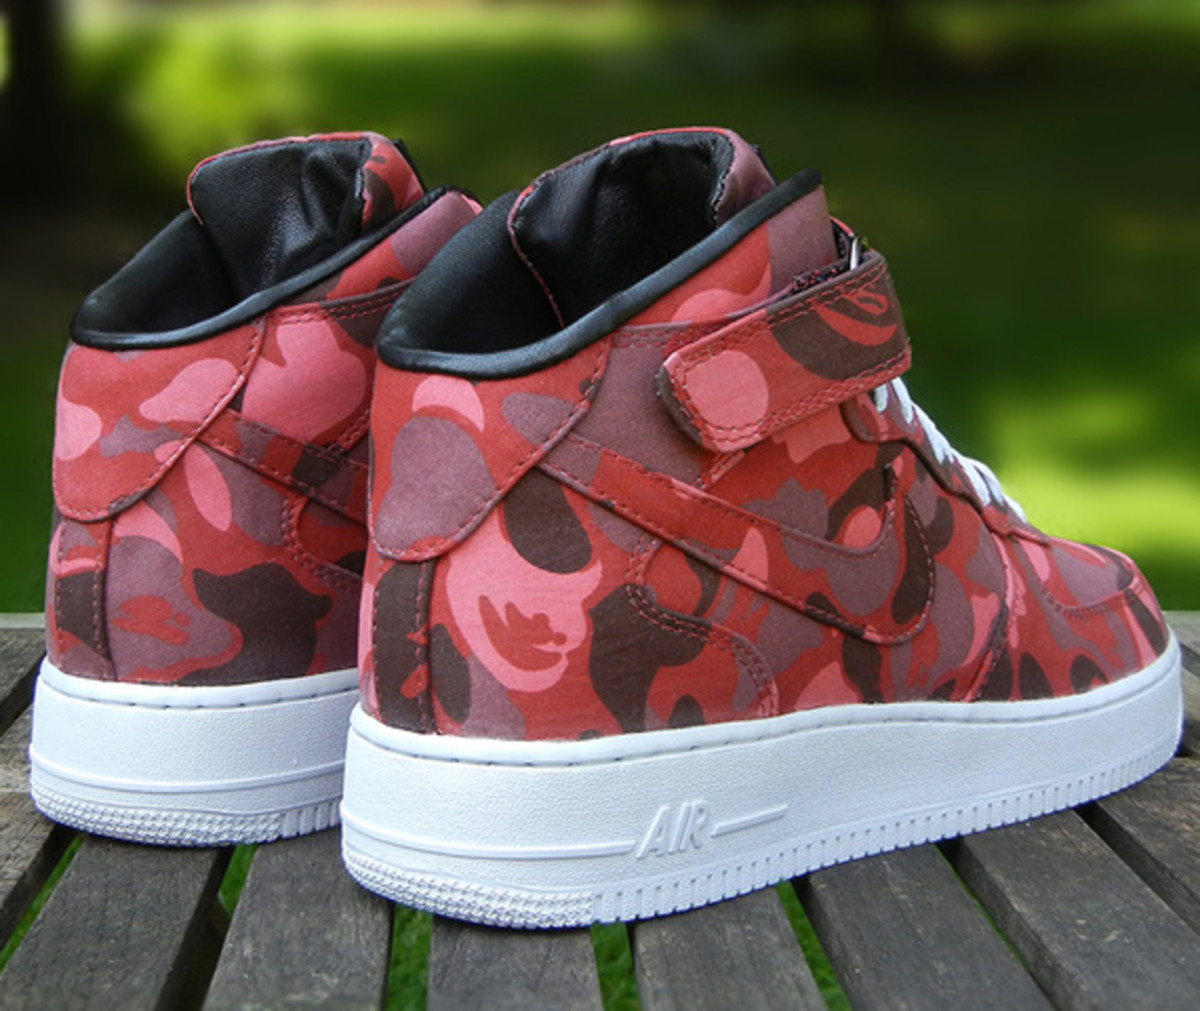 nike-air-force-1-bape-1st-camo-incomparable-custom-by-jbf-customs-03